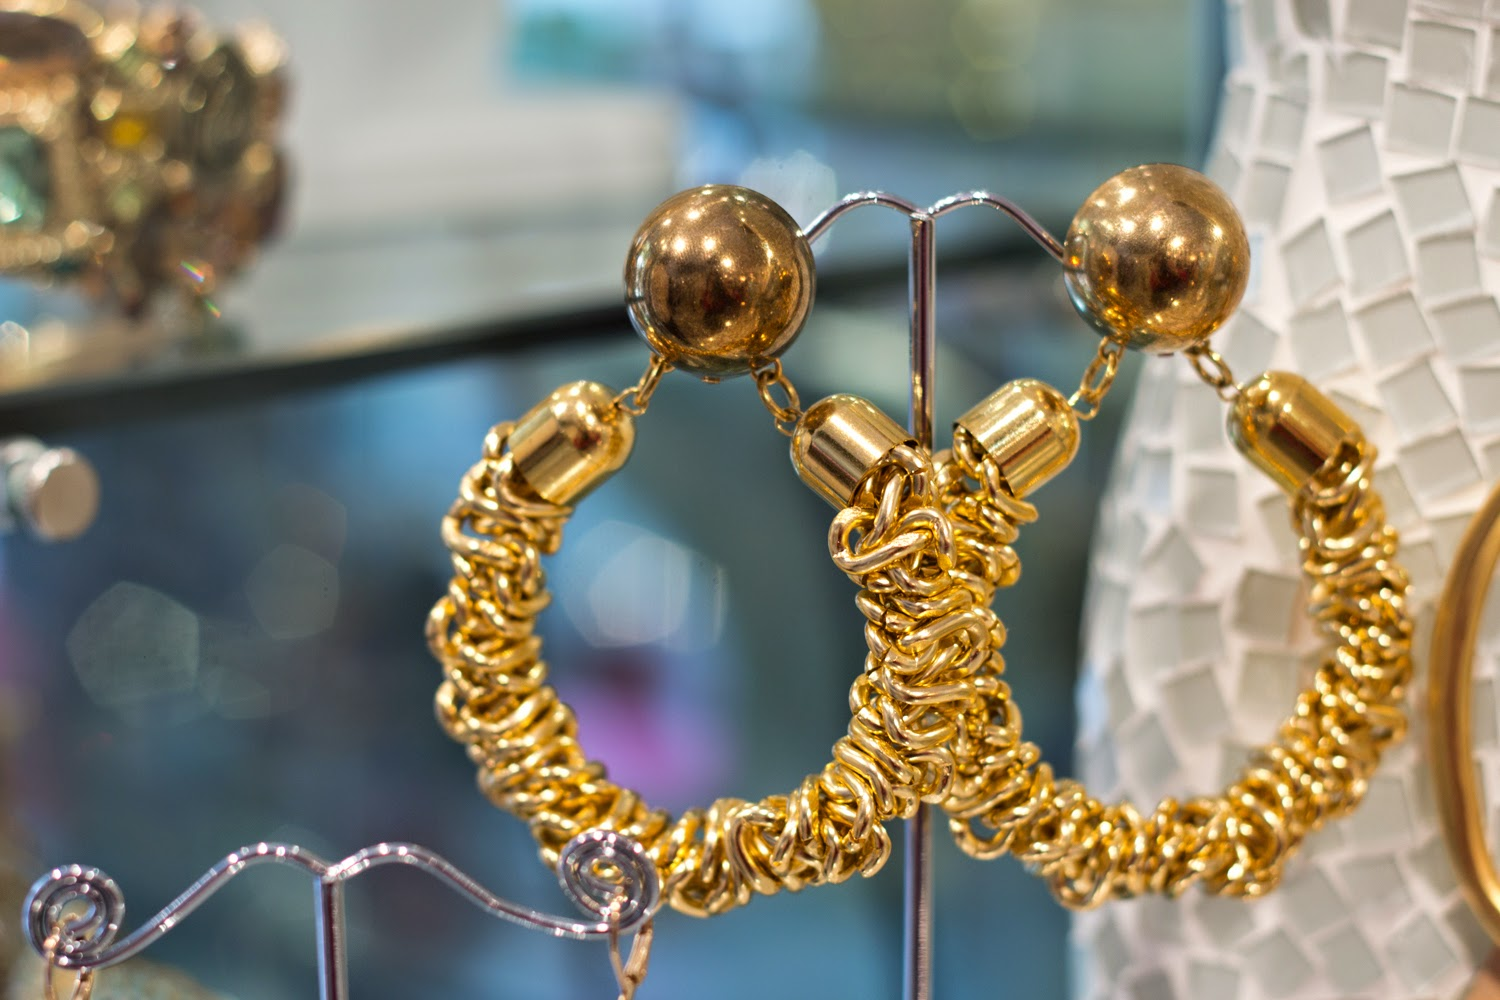 artemis-pop-up-jewellery-store-in-yorkville, gold-earrings, statement-accessory